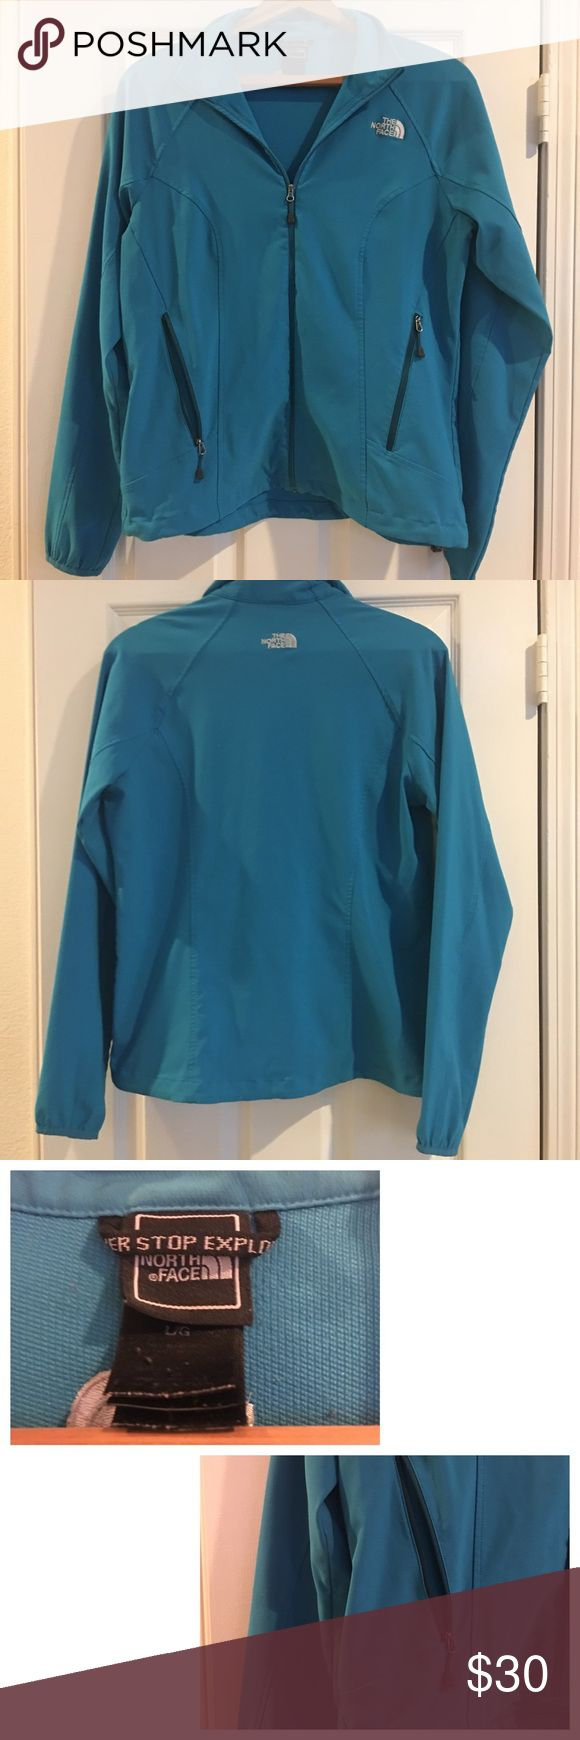 North Face athletic zip up Blue zip up. Used condition, but no stains or rips. Right pocket zipper is broken. I've never tried to fix it. 💕Bundle and Save %15💕 The North Face Jackets & Coats